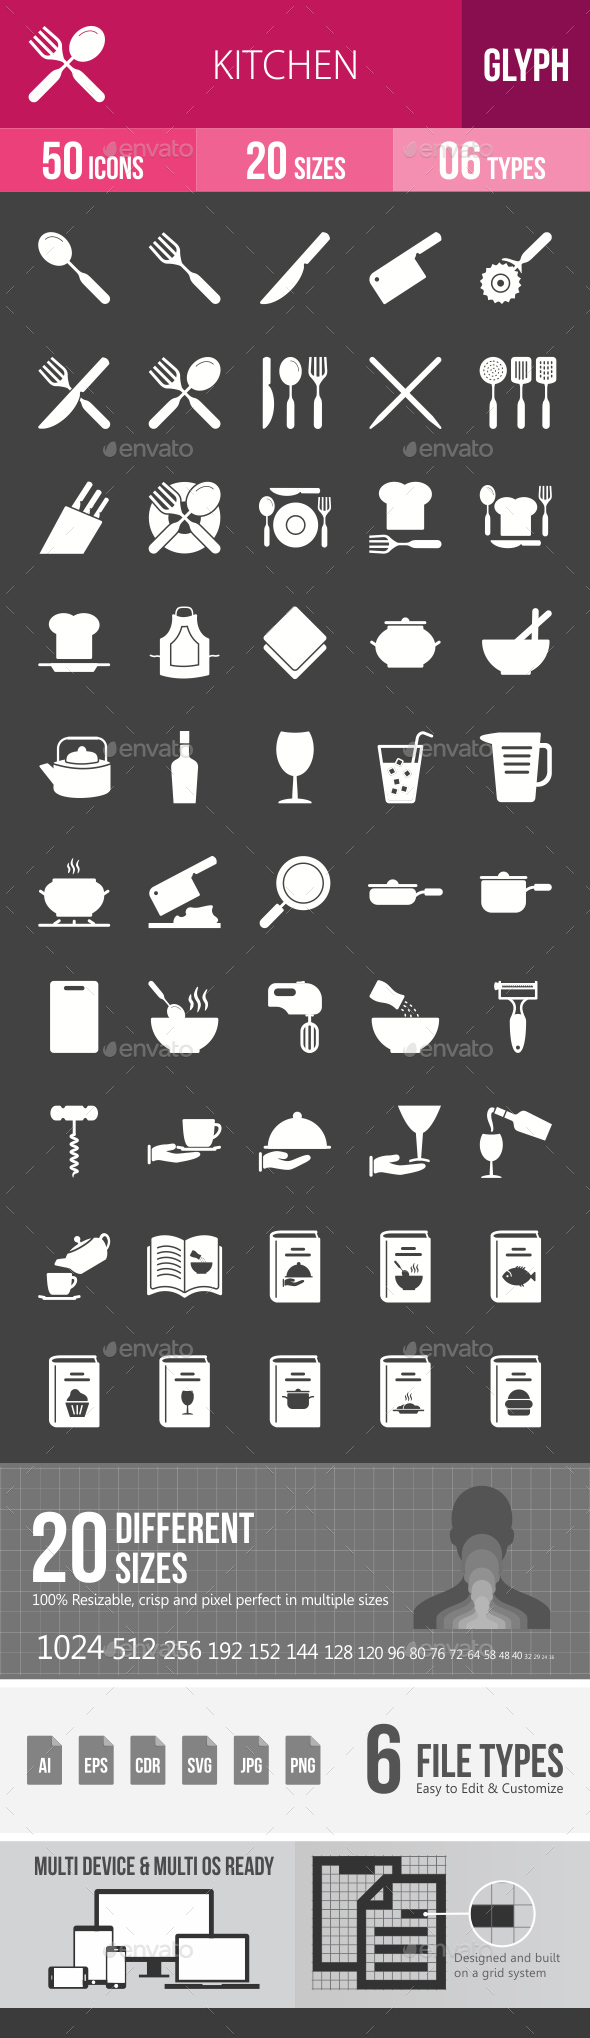 Kitchen Glyph Inverted Icons - Icons